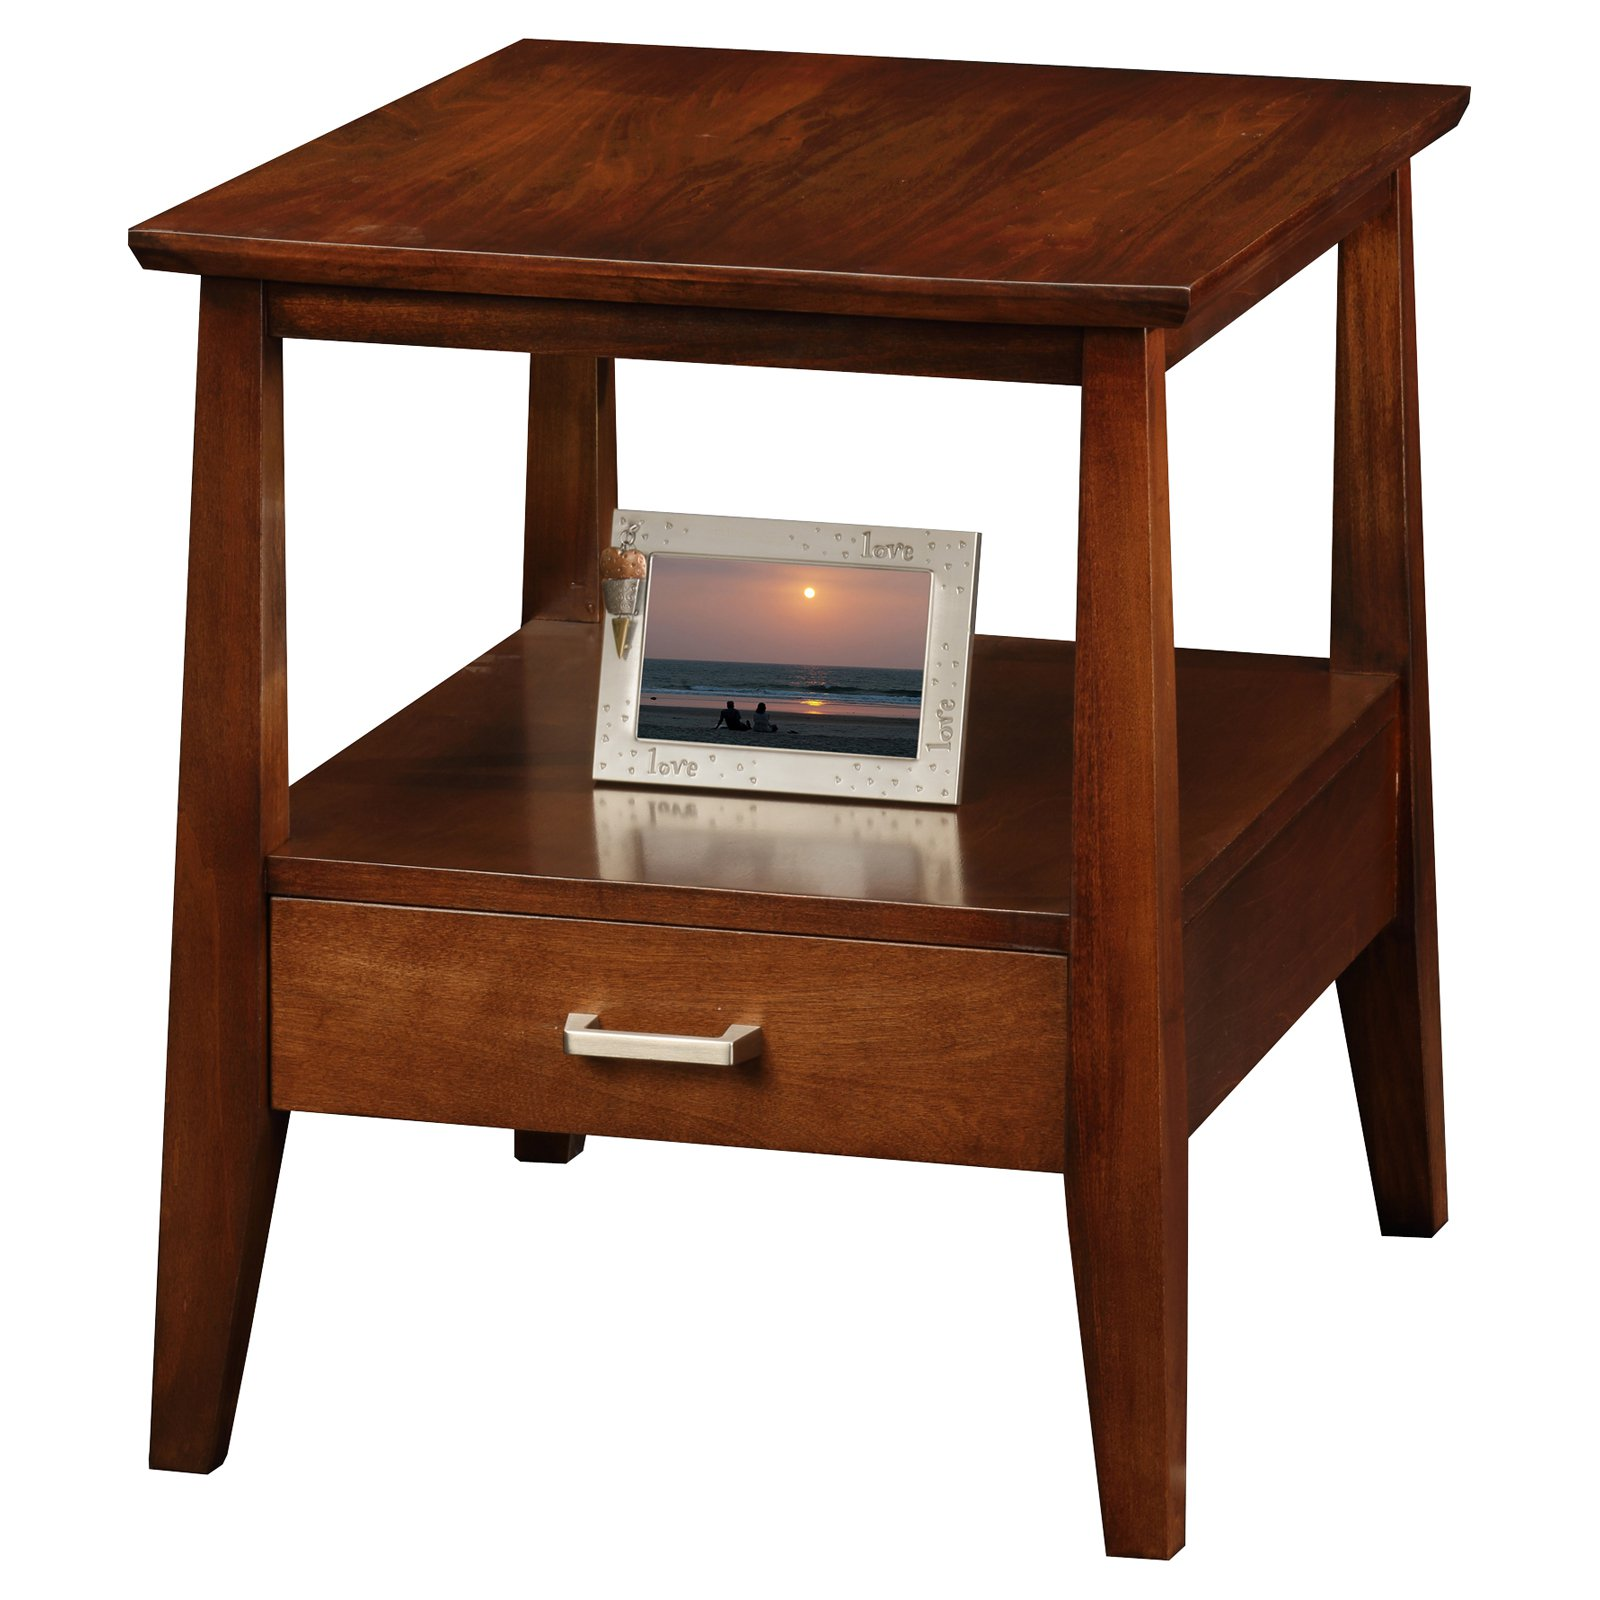 Leick Home Drawer End Table - Delton Collection 10407